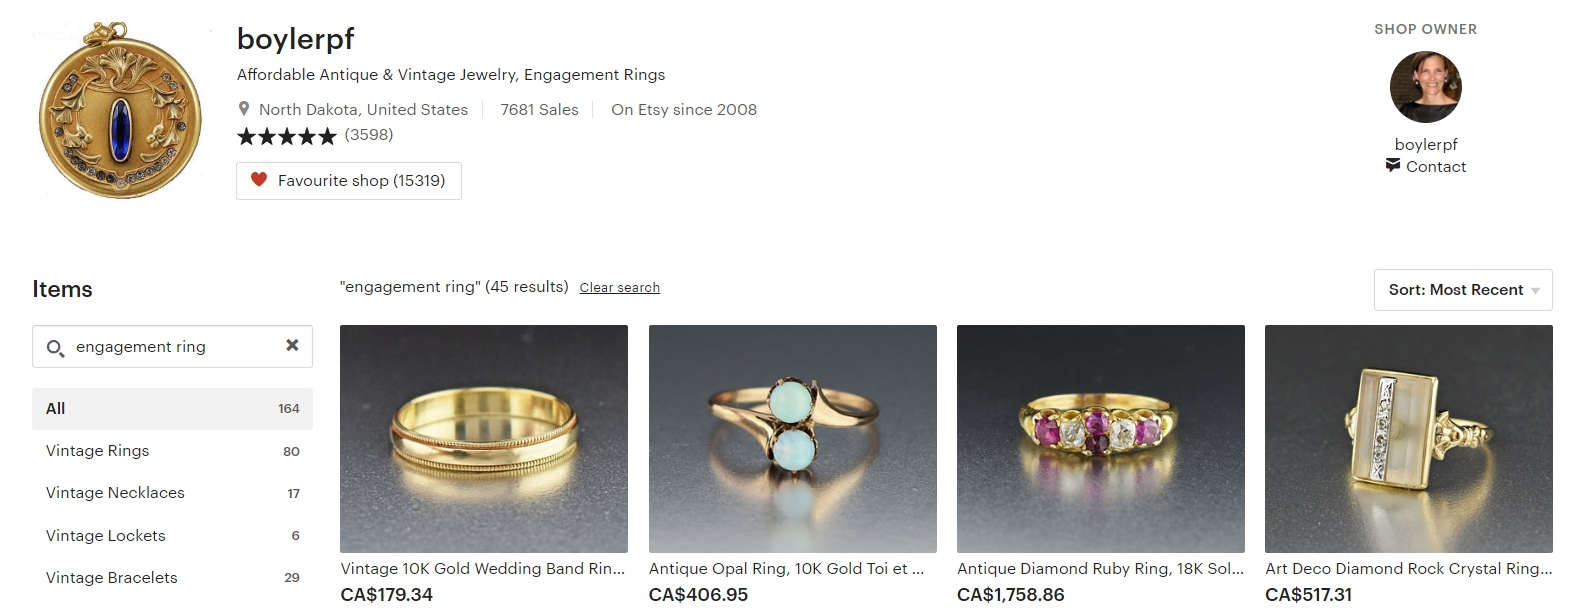 Affordable Vintage Engagement Rings by boylerpf on Etsy